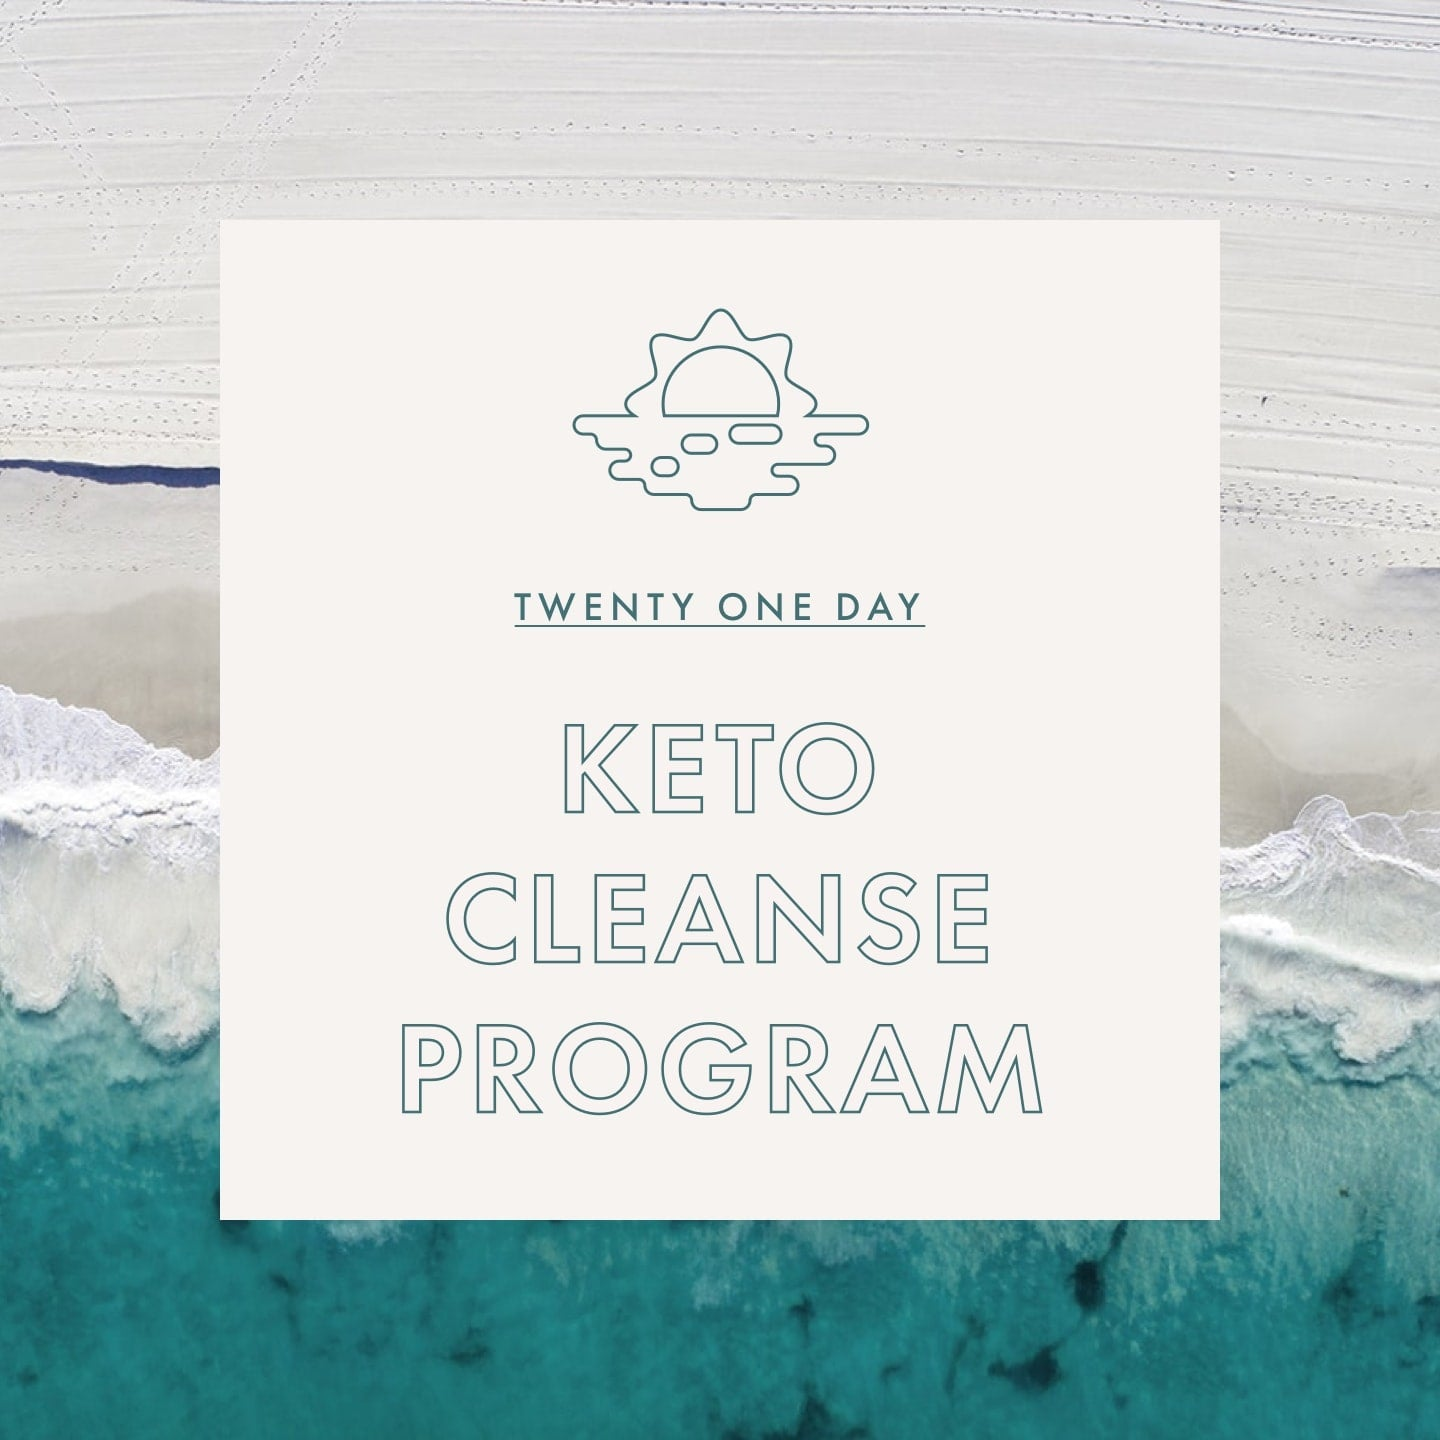 Synchro Keto Cleanse Program